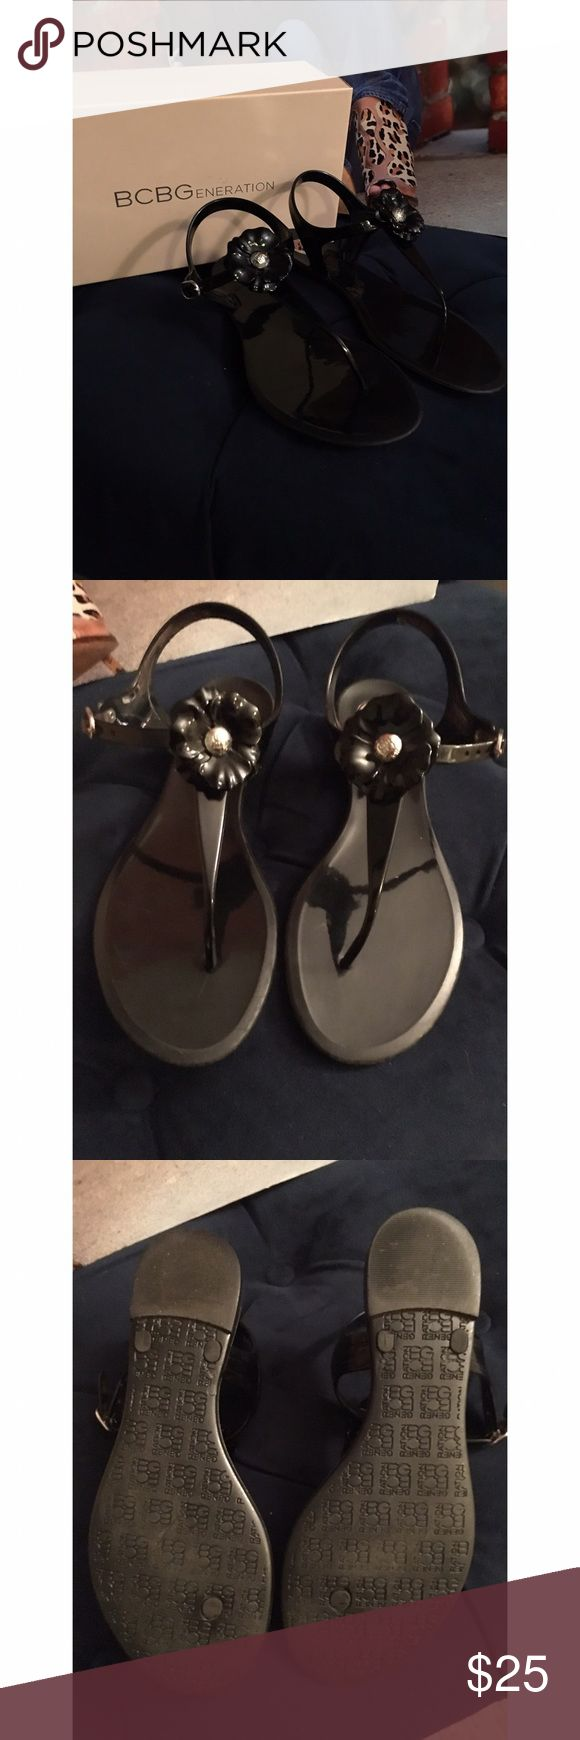 BCBG Black Jelly Sandals BCBG Black Jelly Sandals. Durable hard plastic sandal perfect for the beach or vacation. Easy to wipe clean. Some slight signs of wear which is not visible while wearing. Black color and material camouflages signs of wear 🙌🏾 Make me an offer 😉 BCBG Shoes Sandals